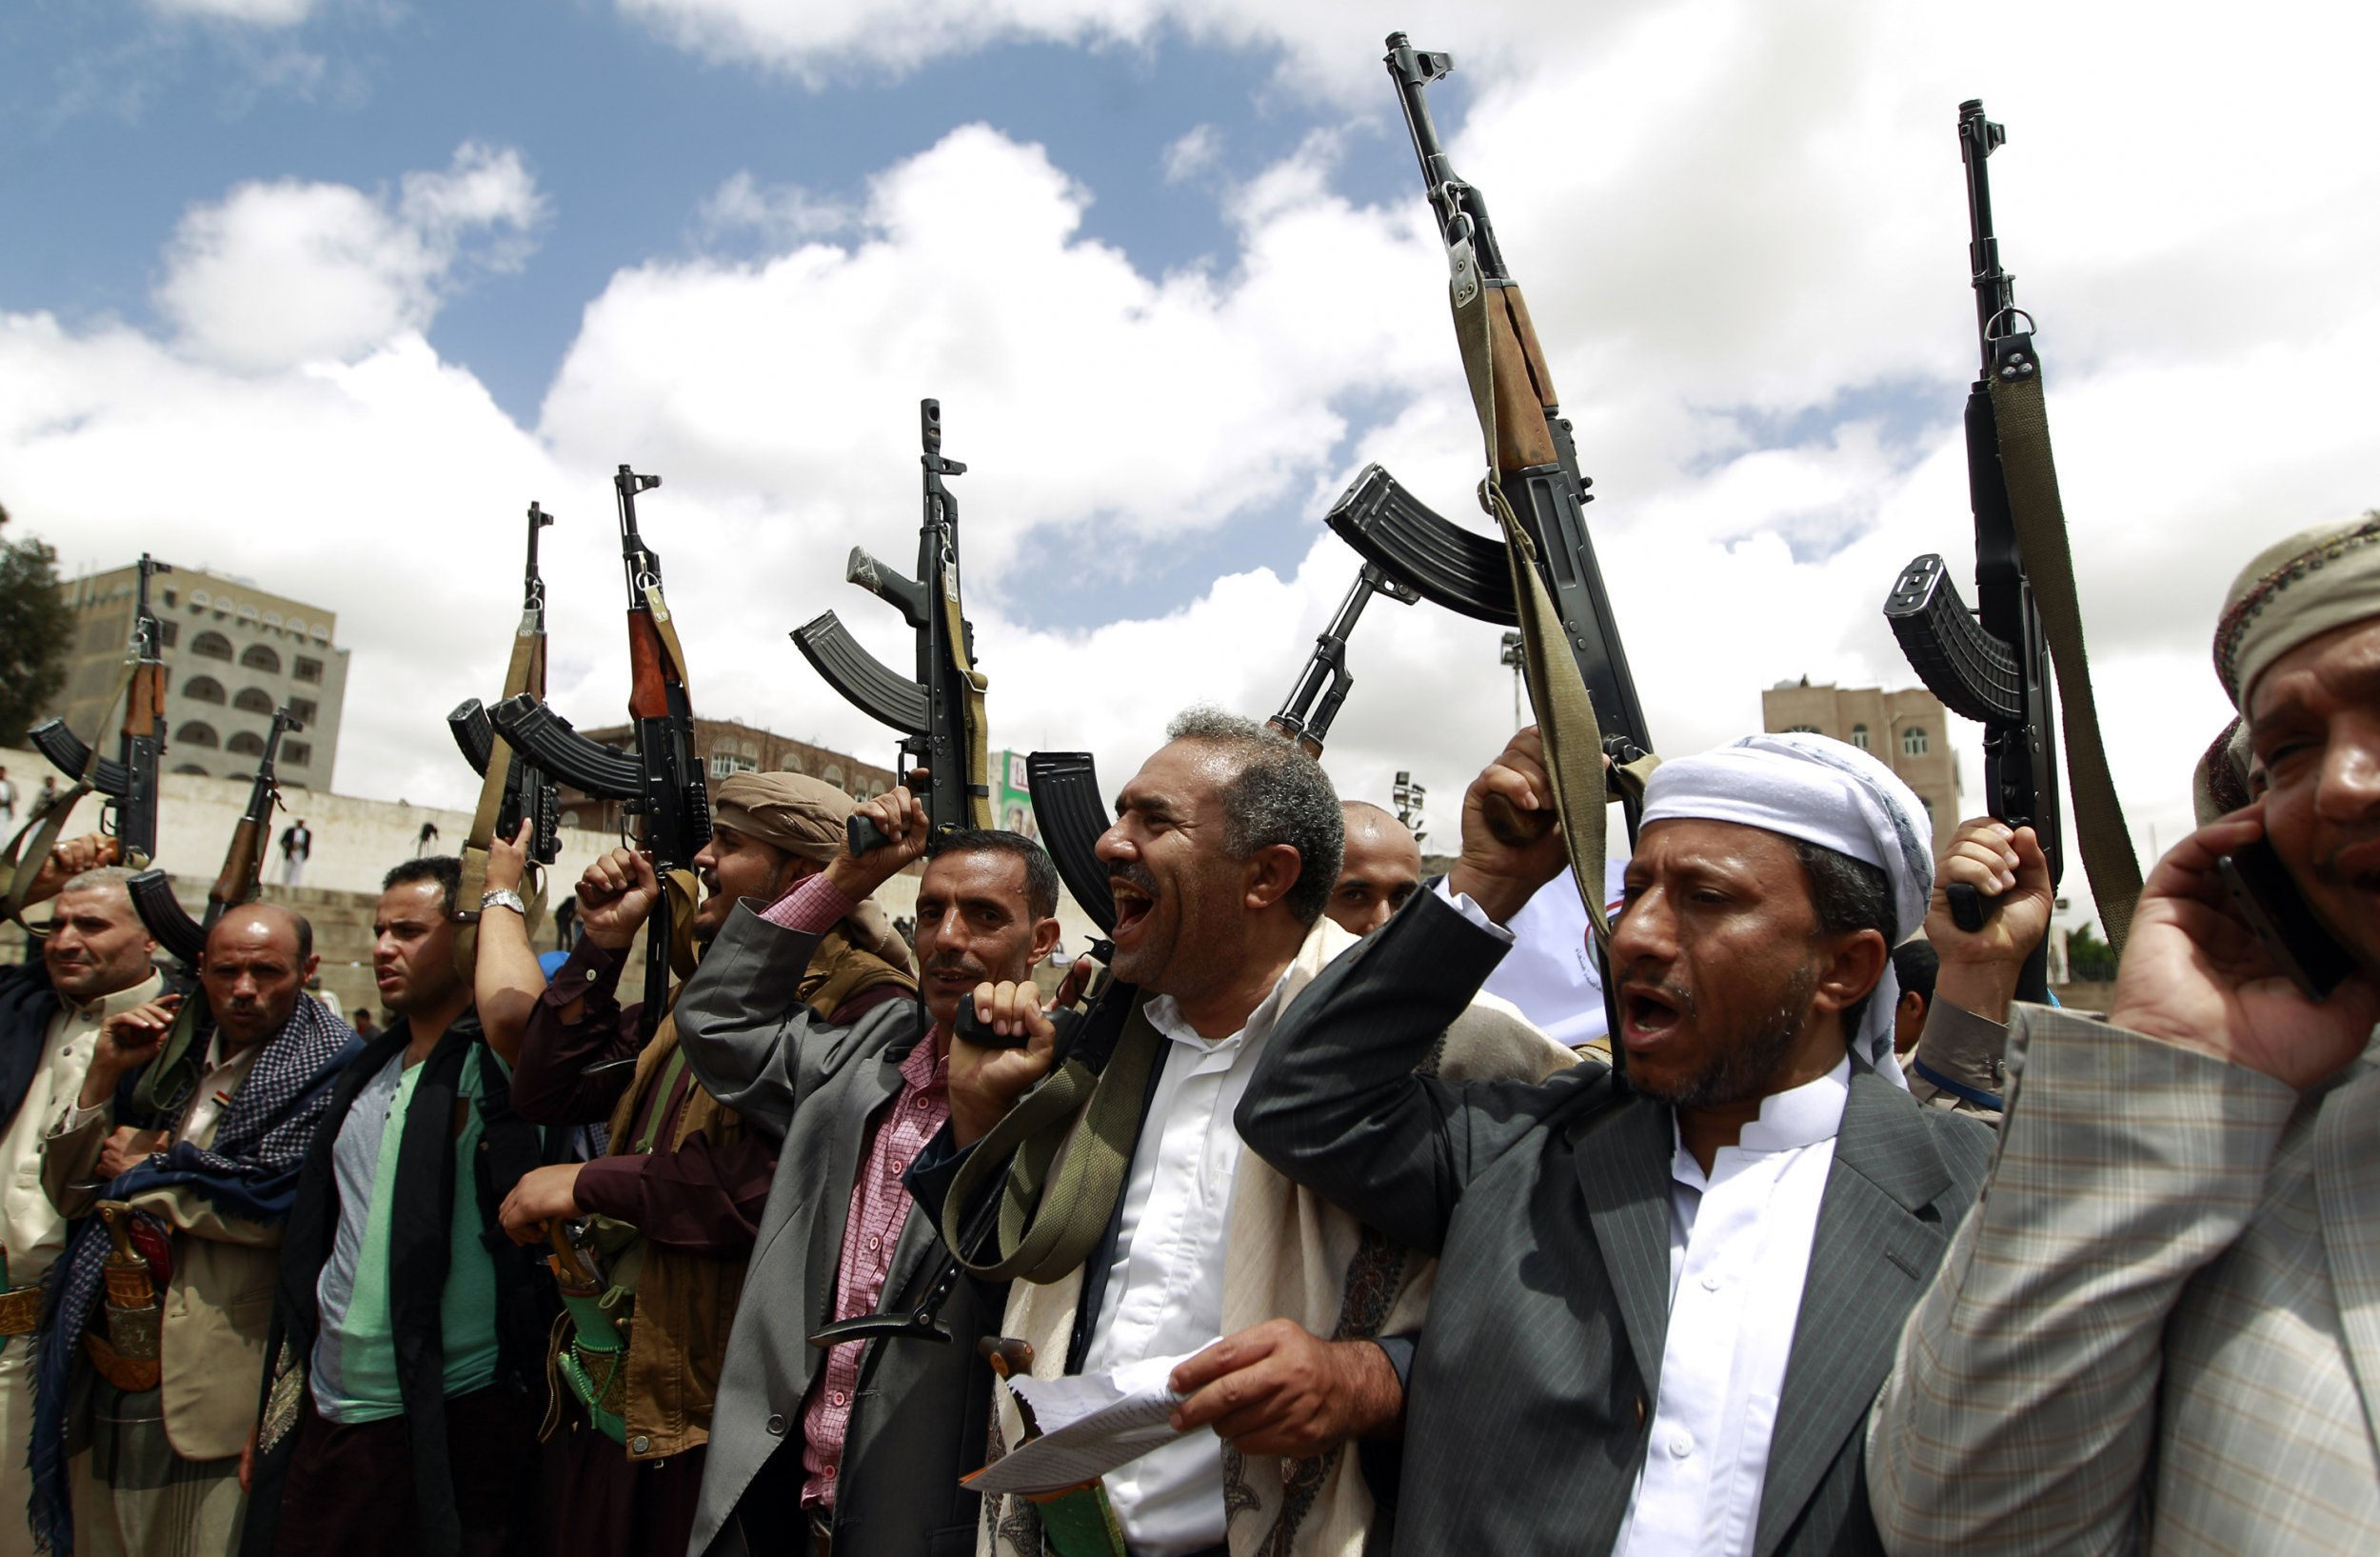 Houthi supporters in Yemen